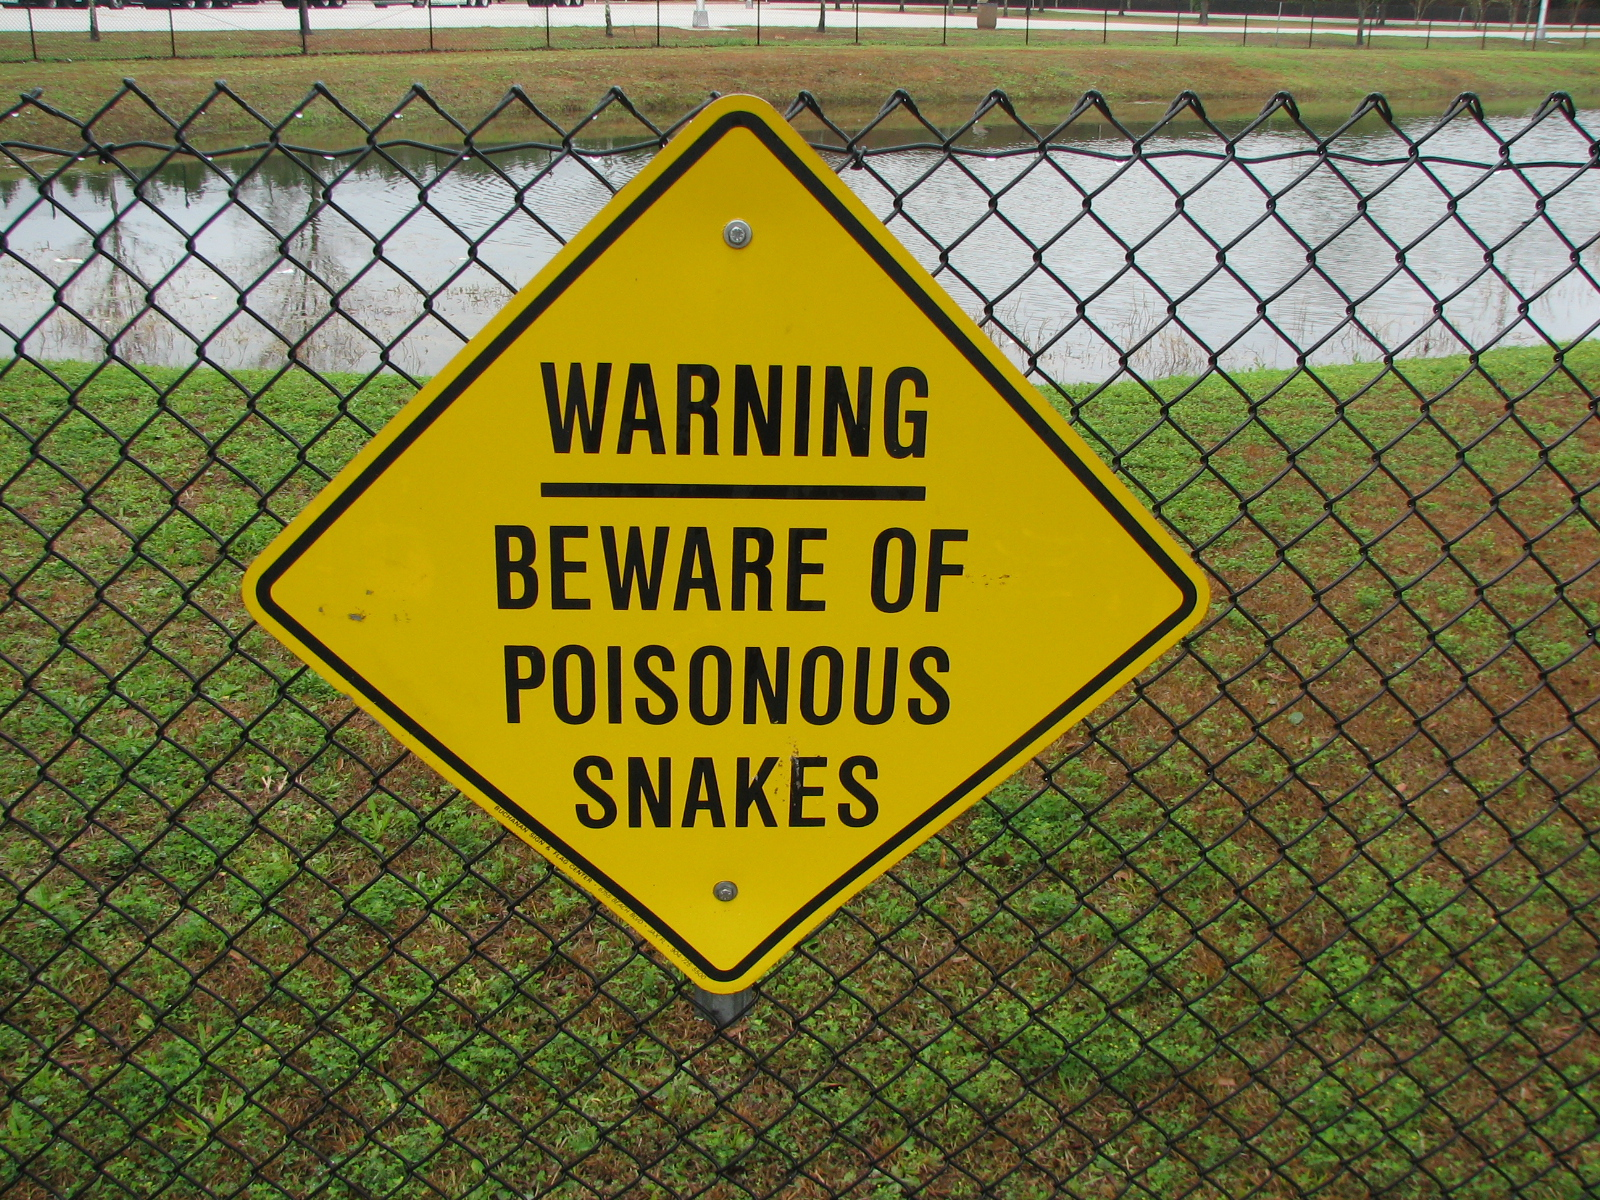 Description poisonous snake warning sign jpg